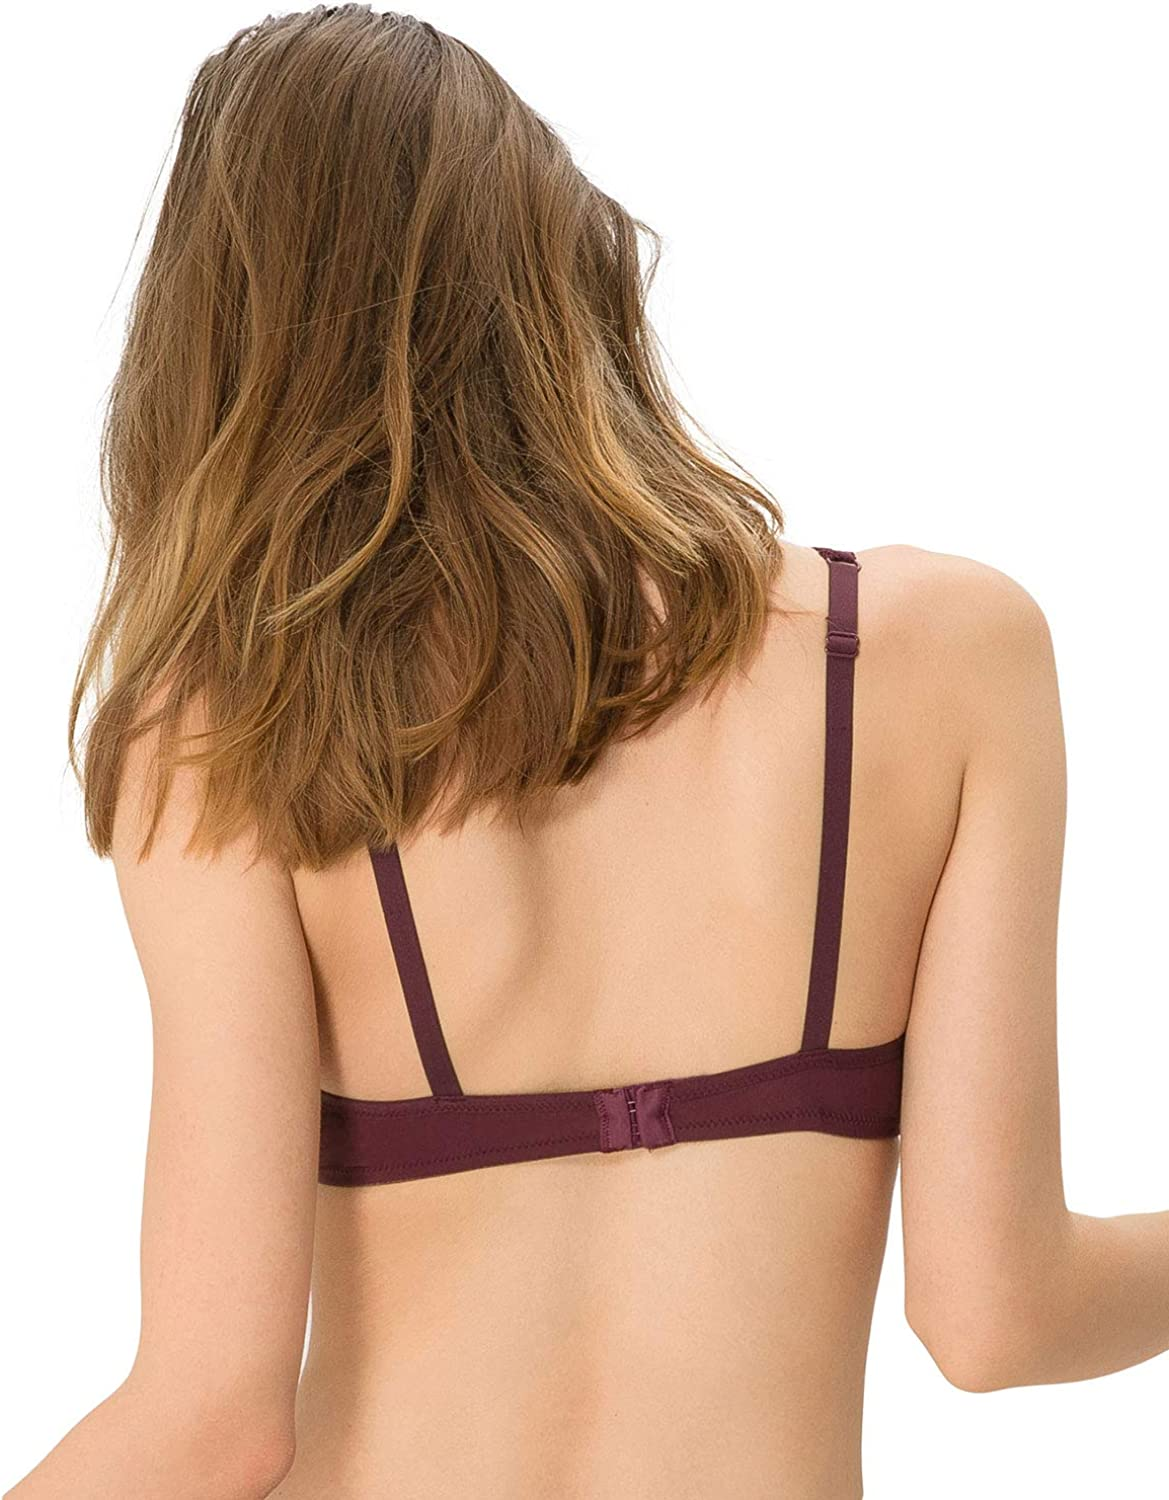 Variance 27836 Womens Attractive Padded Underwired Padded Bra